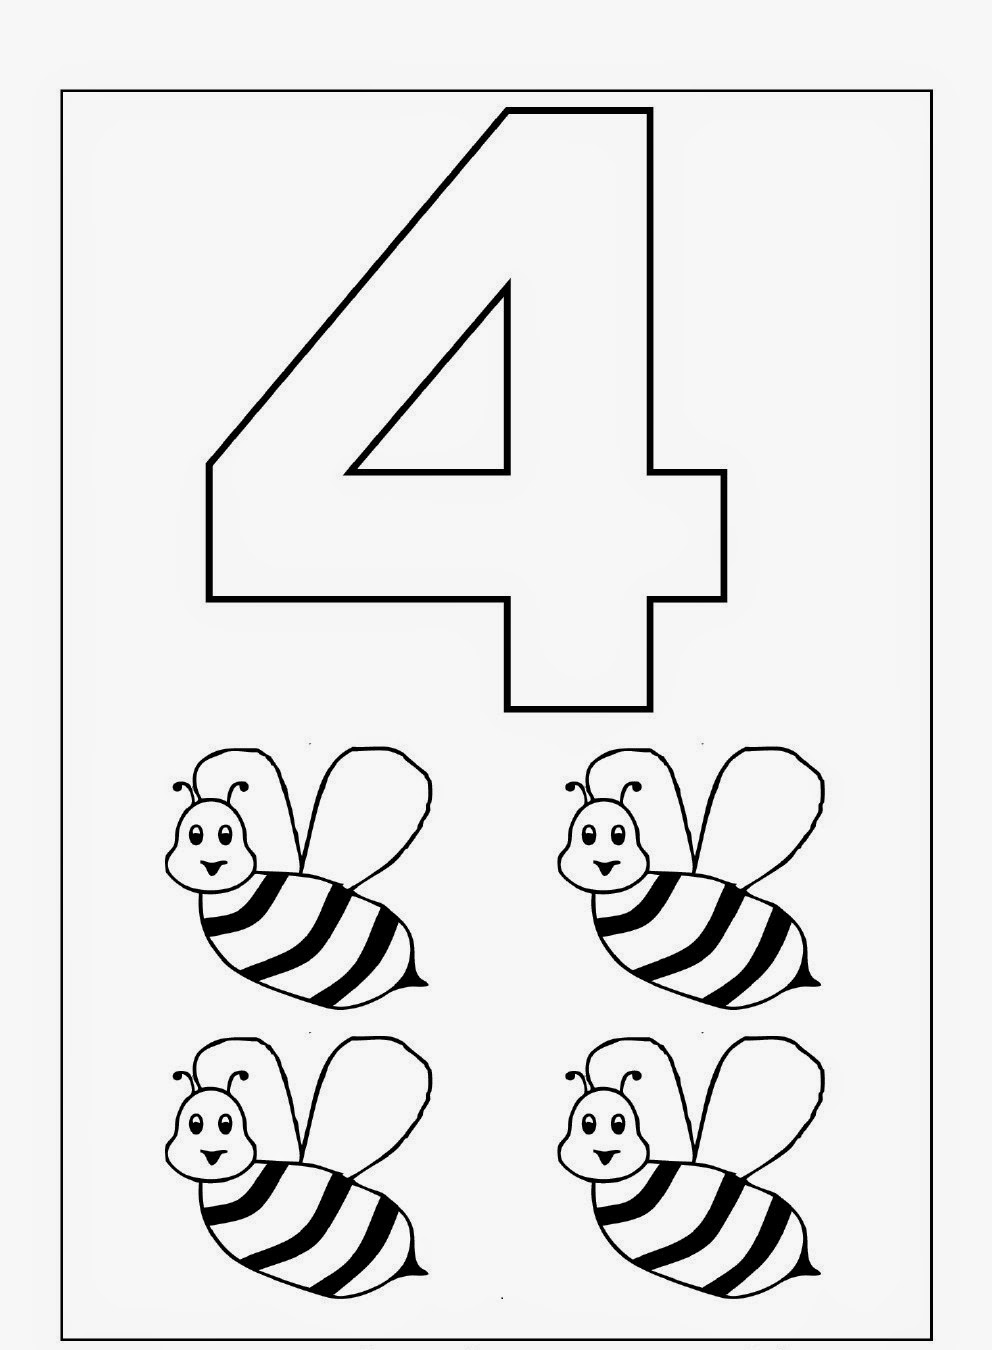 color by number worksheets free kindergarten worksheets coloring worksheets maths 1 10 color number free worksheets by